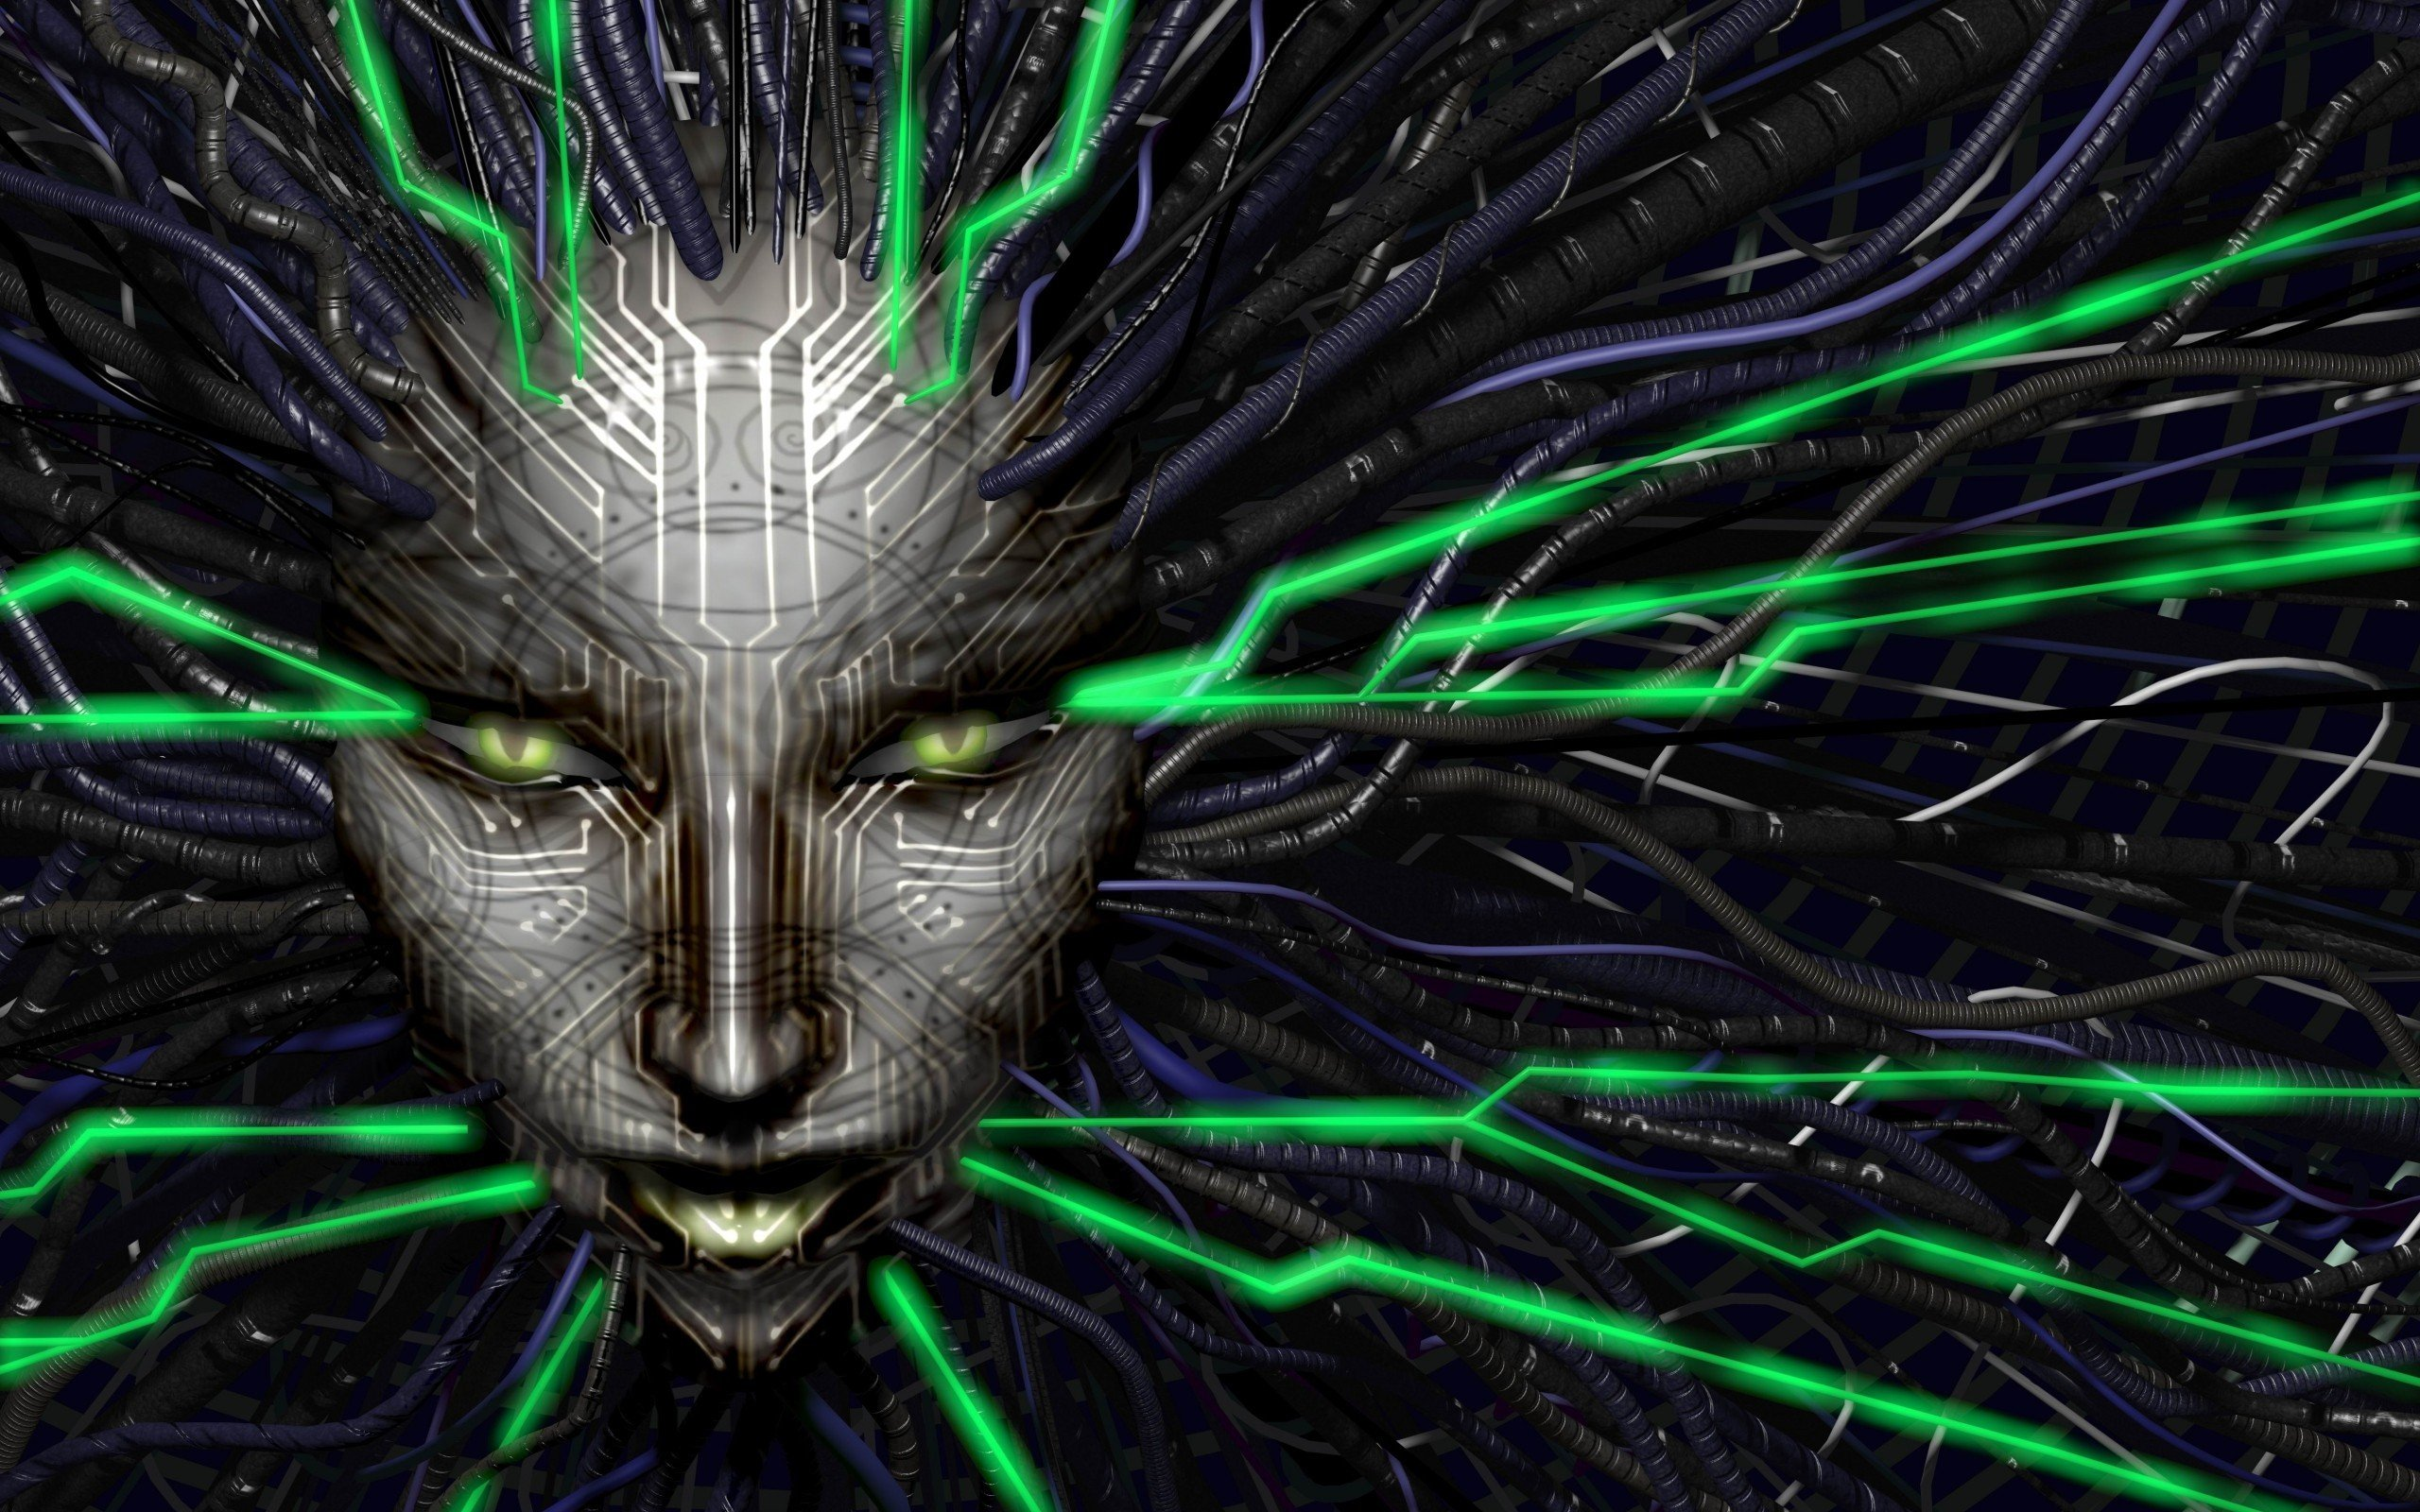 Circuits Electronics Hd Wallpapers Desktop And Mobile Images Photos Electronic Wallpaper 1920x1200 Arts Technology System Shock Shodan